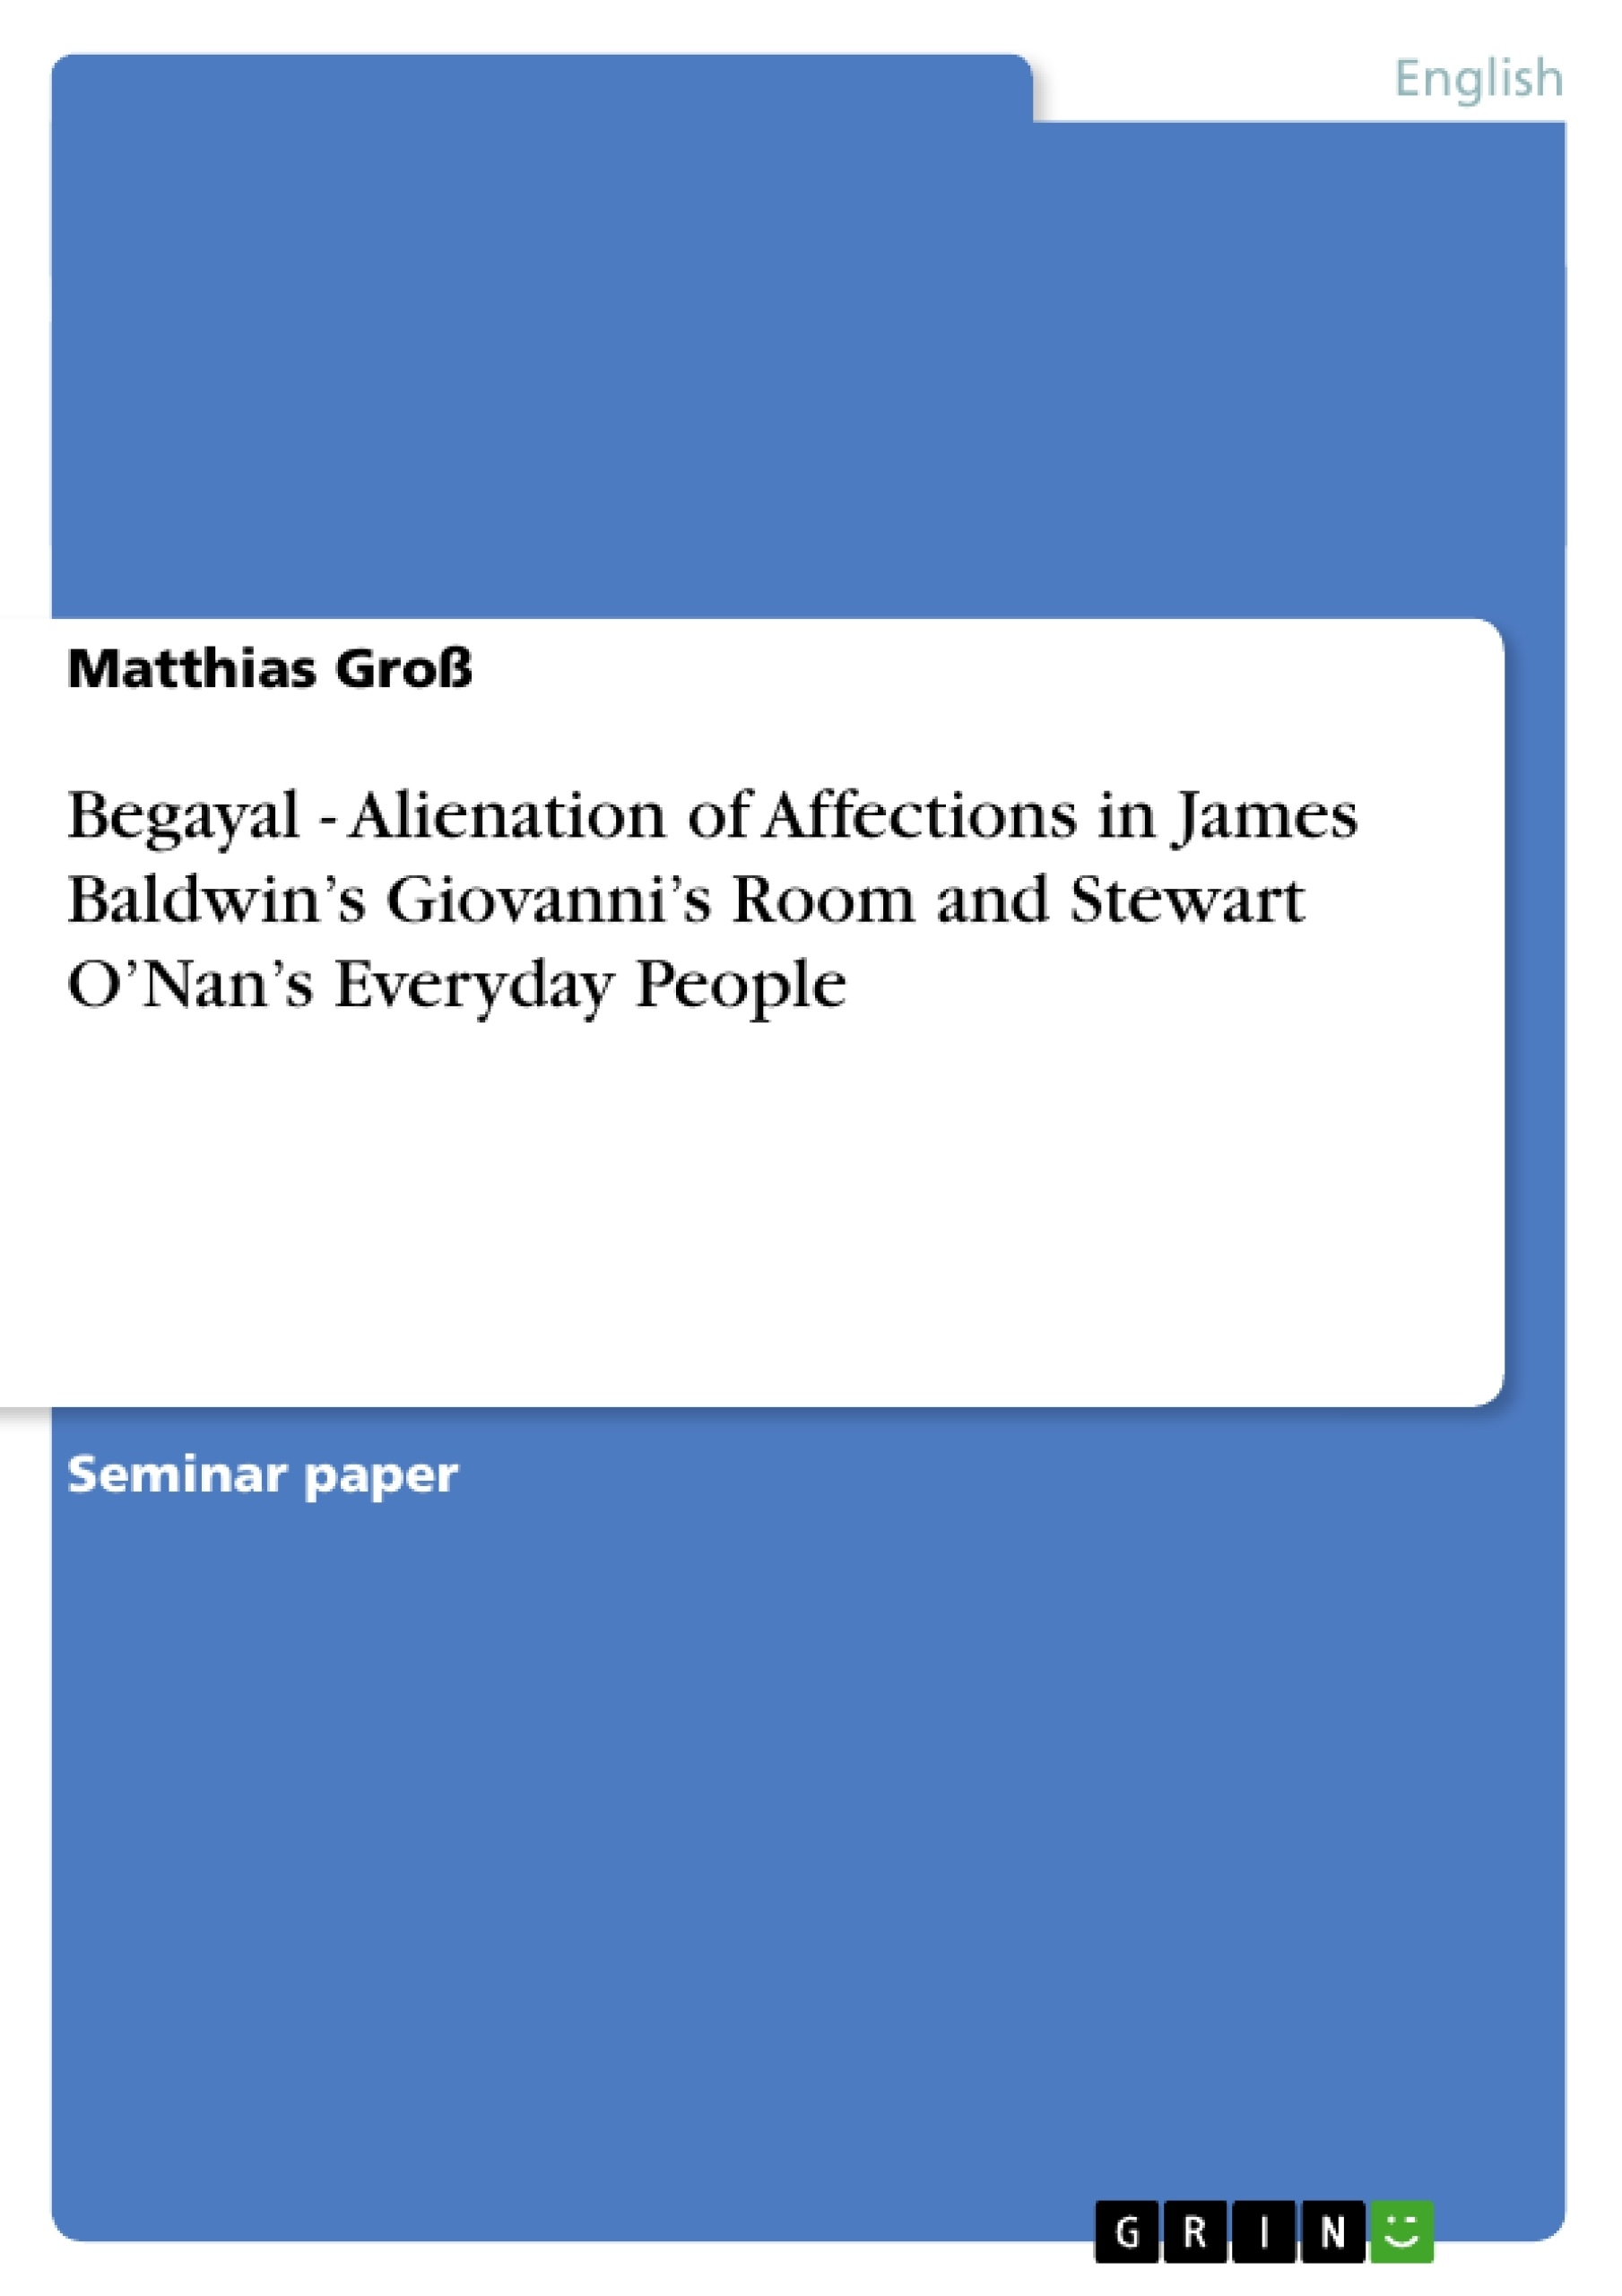 Title: Begayal - Alienation of Affections in James Baldwin's Giovanni's Room and Stewart O'Nan's Everyday People